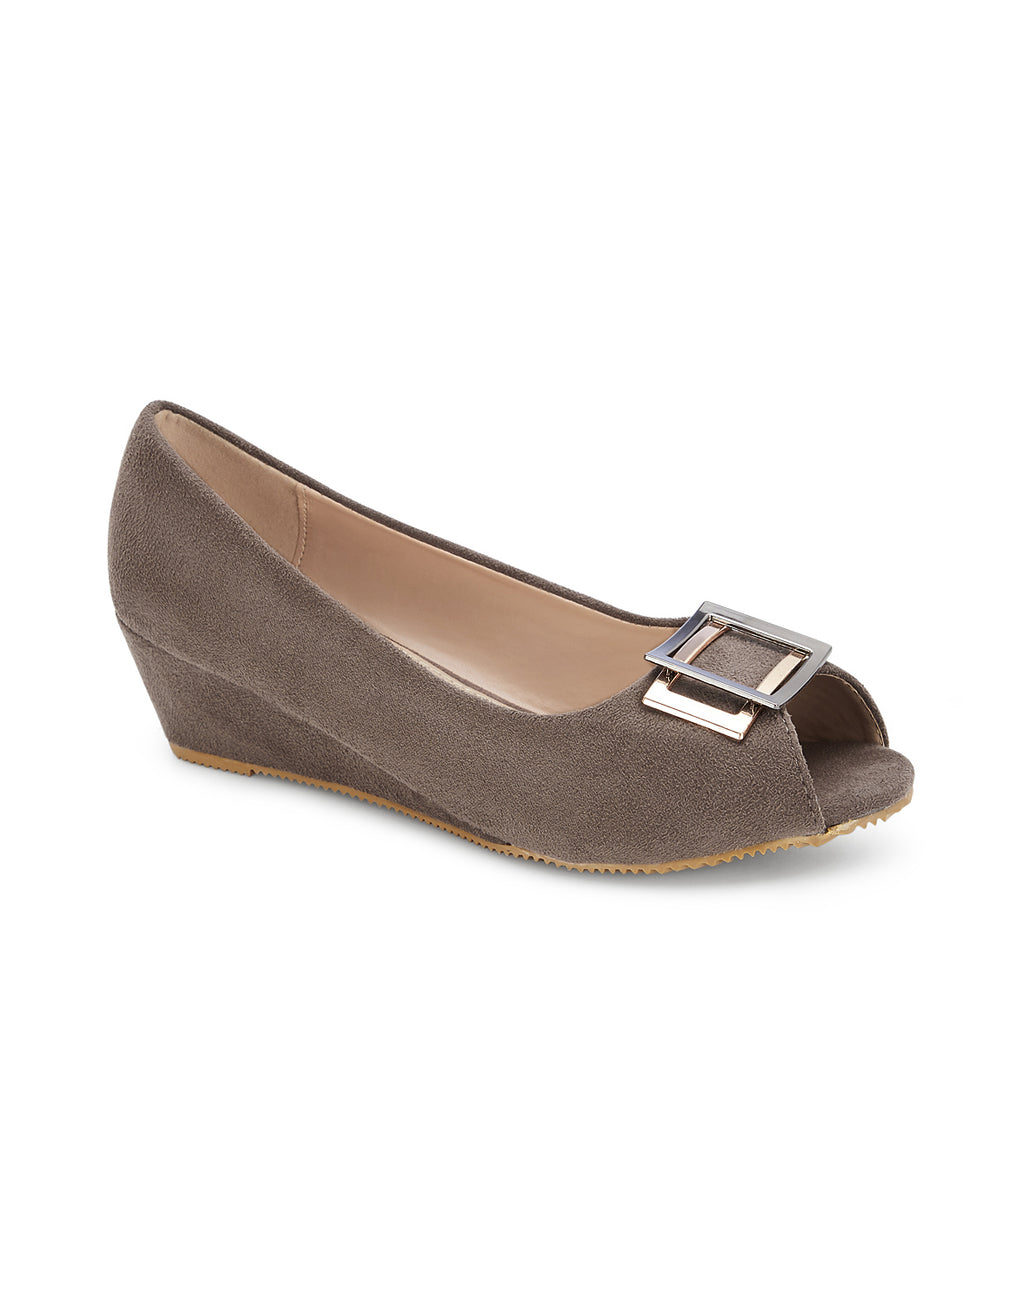 Lucette Taupe Open Toe Wedges